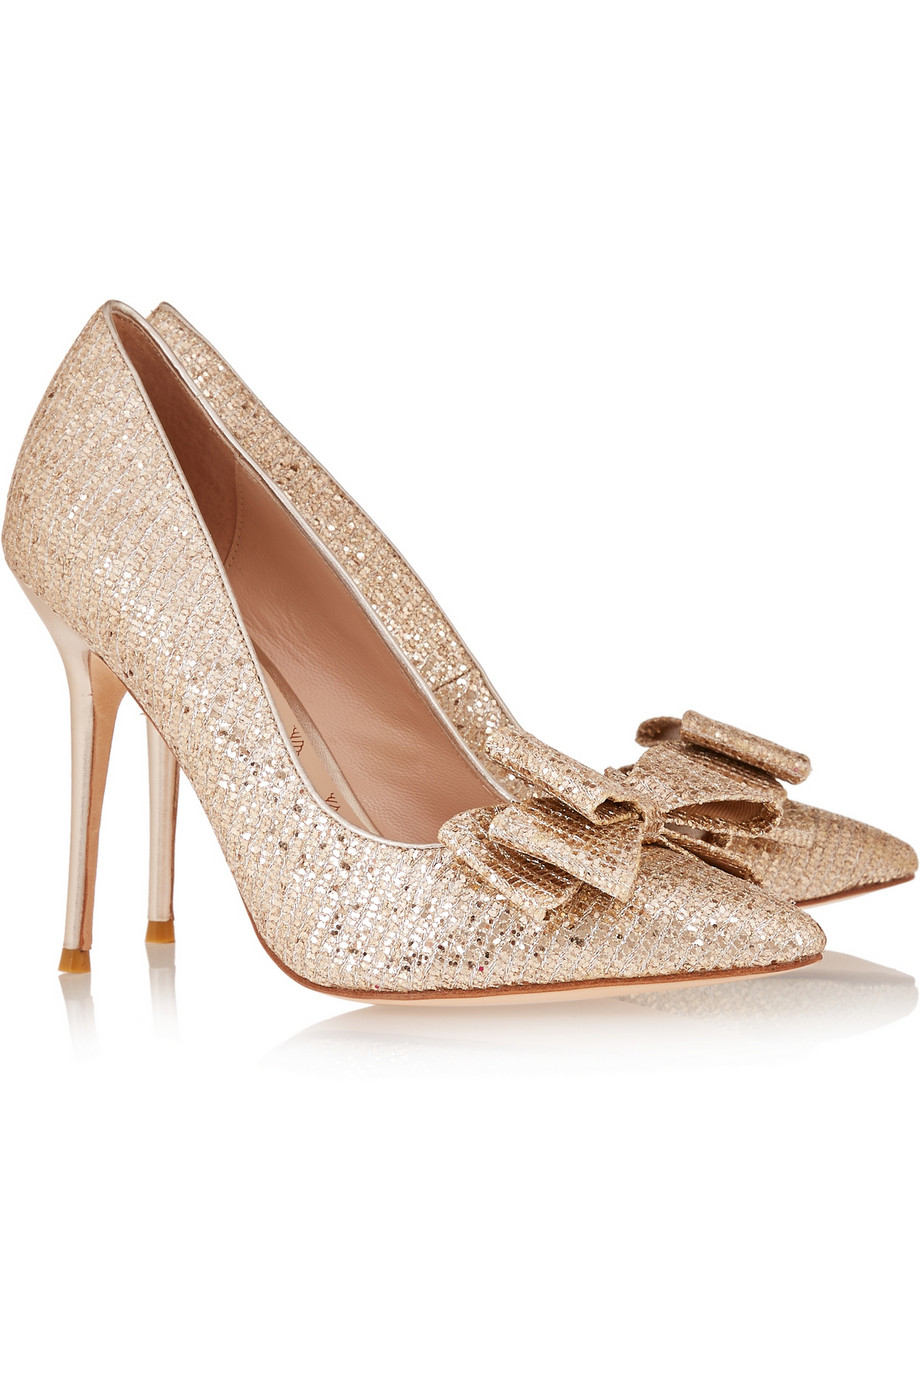 Lucy choi Rose Bow-Embellished Glitter-Finished Pumps in Metallic ...